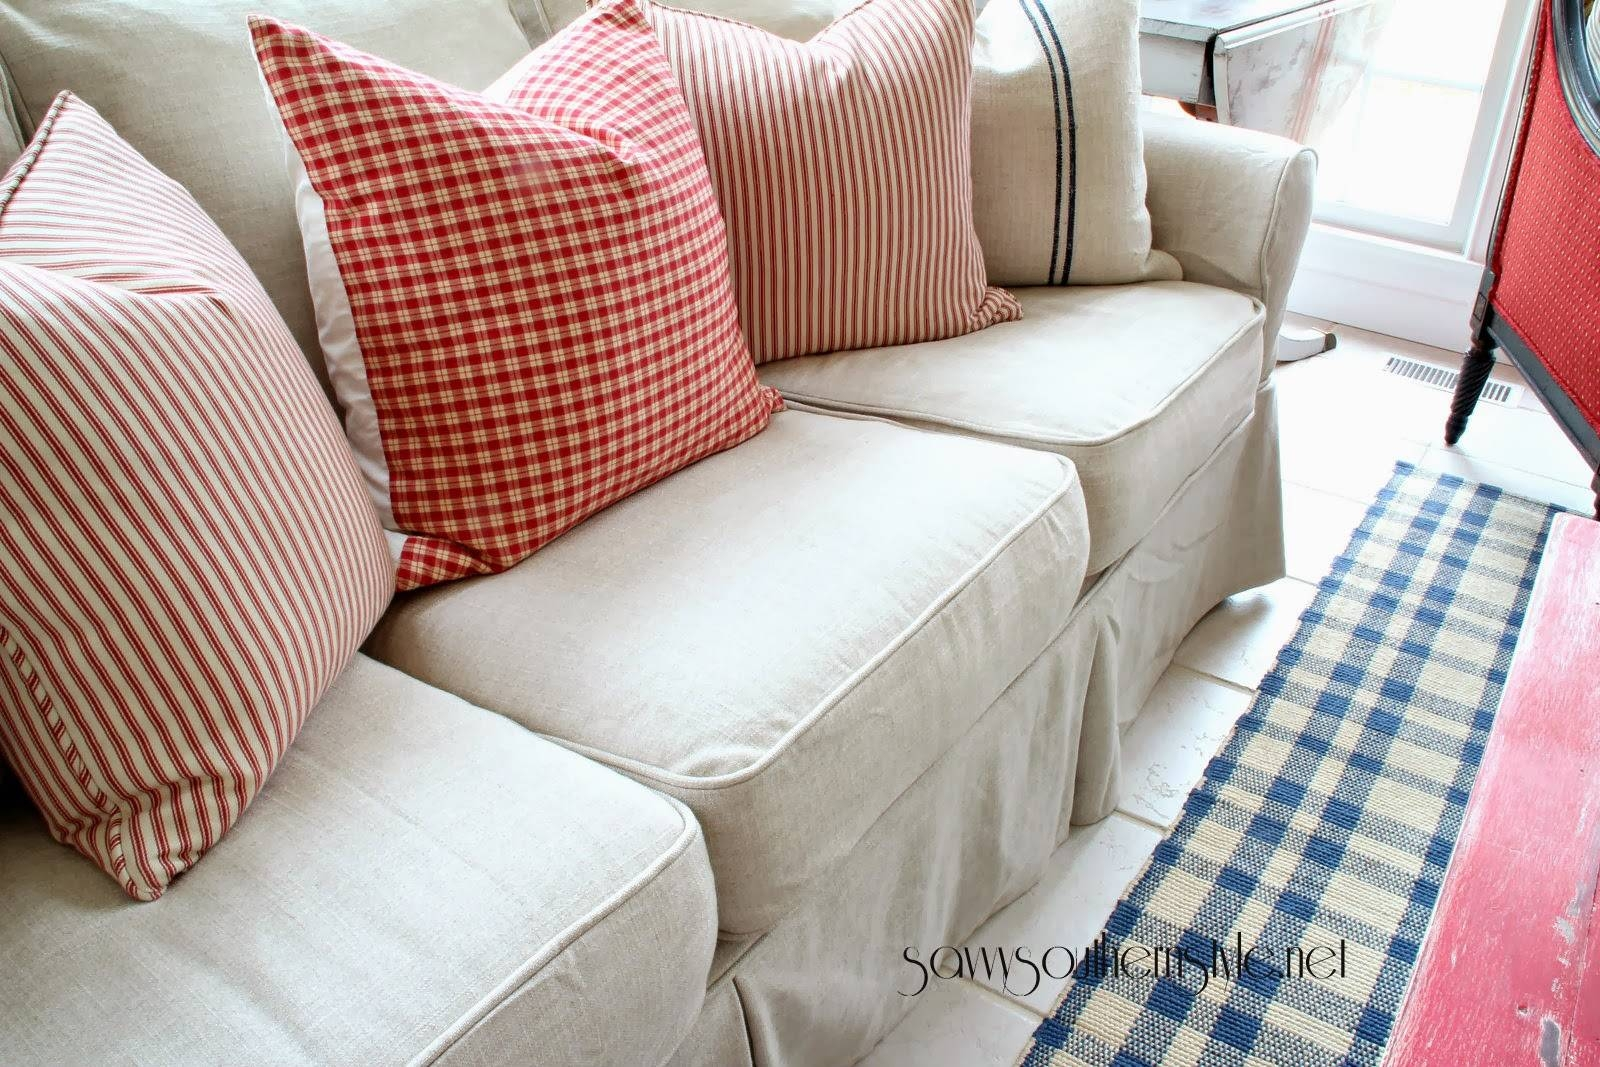 Custom Slipcovers And Couch Cover For Any Sofa Online Intended For Slipcovers Sofas (View 7 of 30)